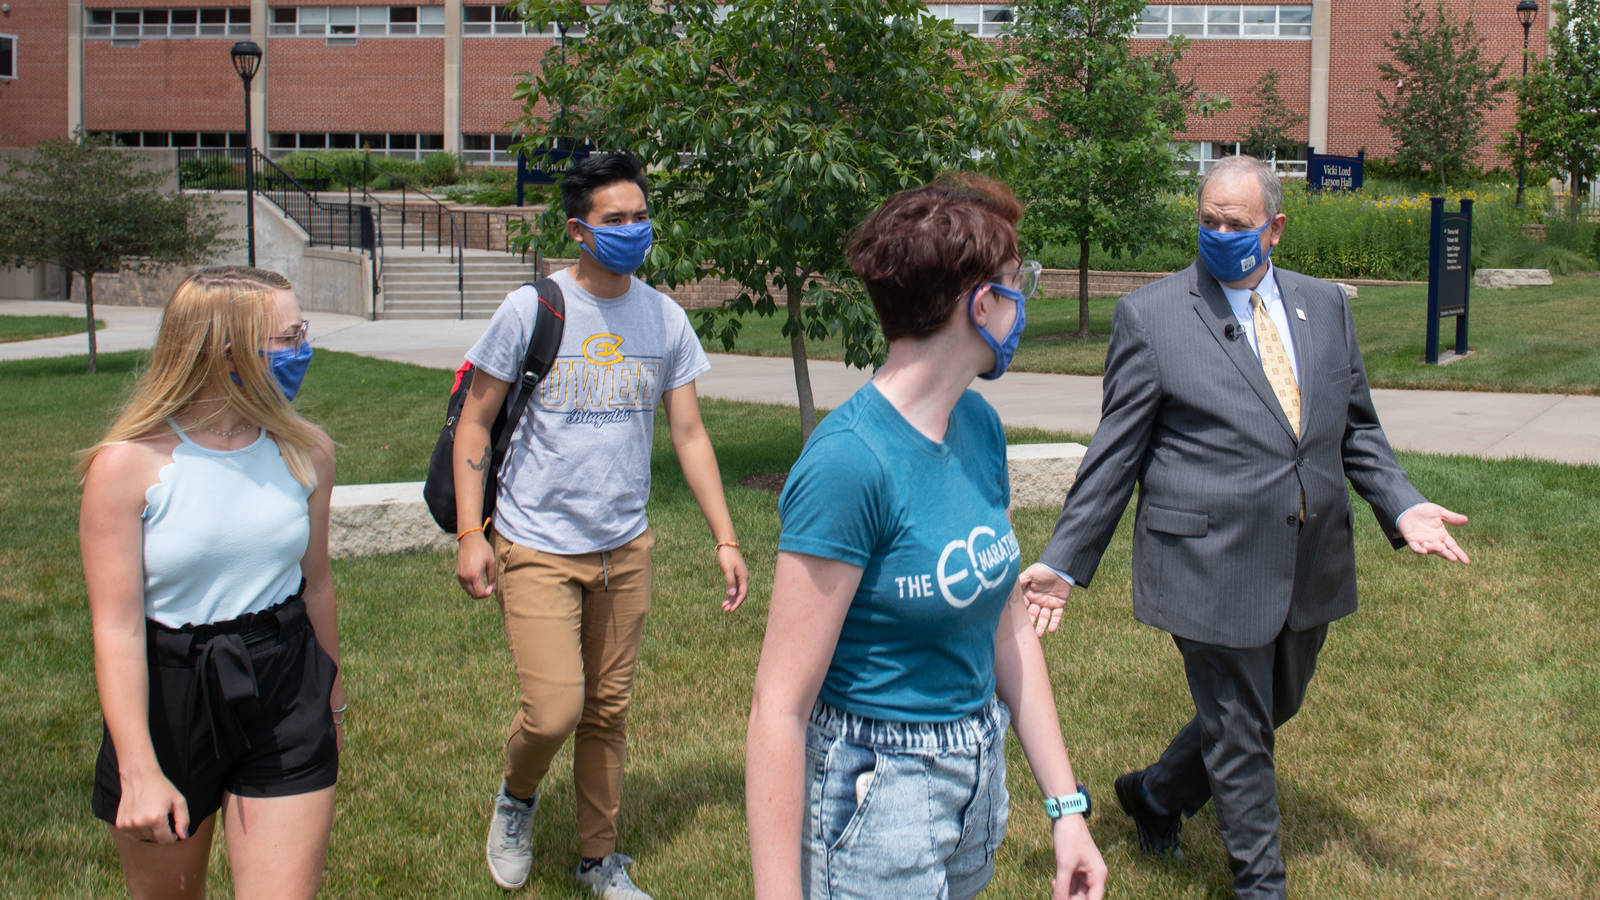 Chancellor Schmidt walks on campus with students pre-reopeing, waering masks